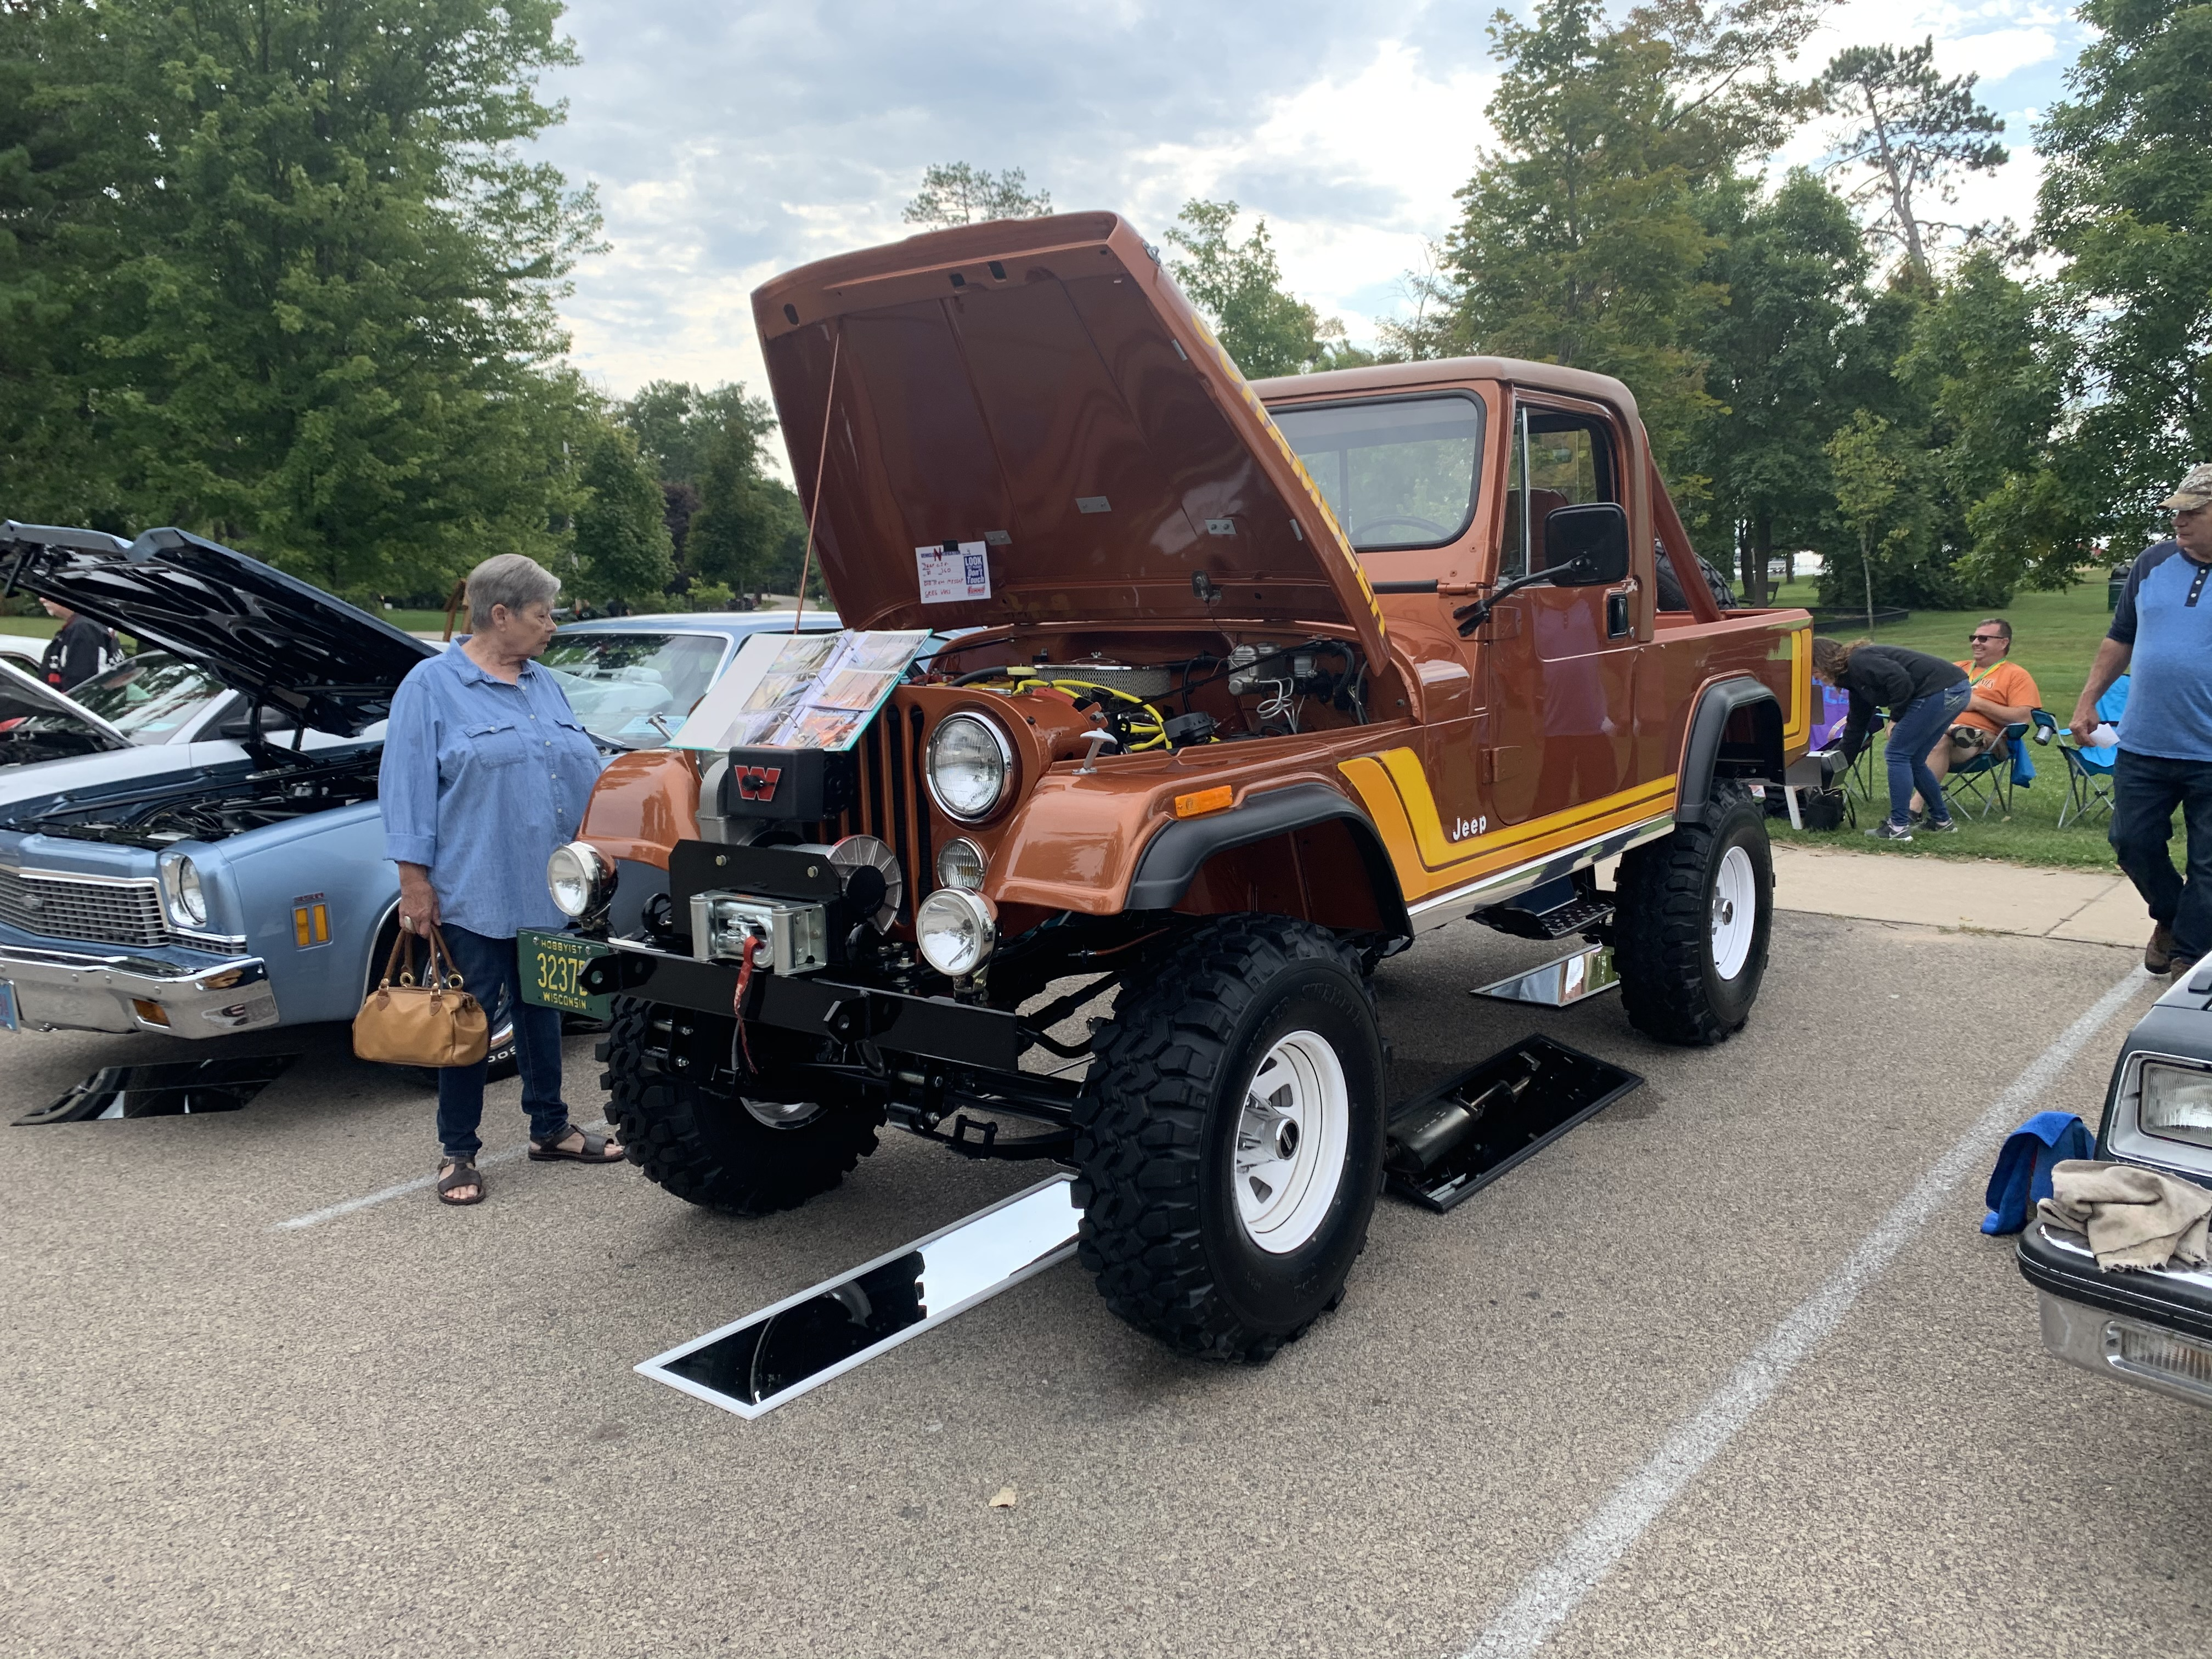 A custom Jeep with a lifted body and a bed was one of the popular attractions for visitors at the car show at Shawano Lake County Park on Sept. 12.Luke Reimer | NEW Media